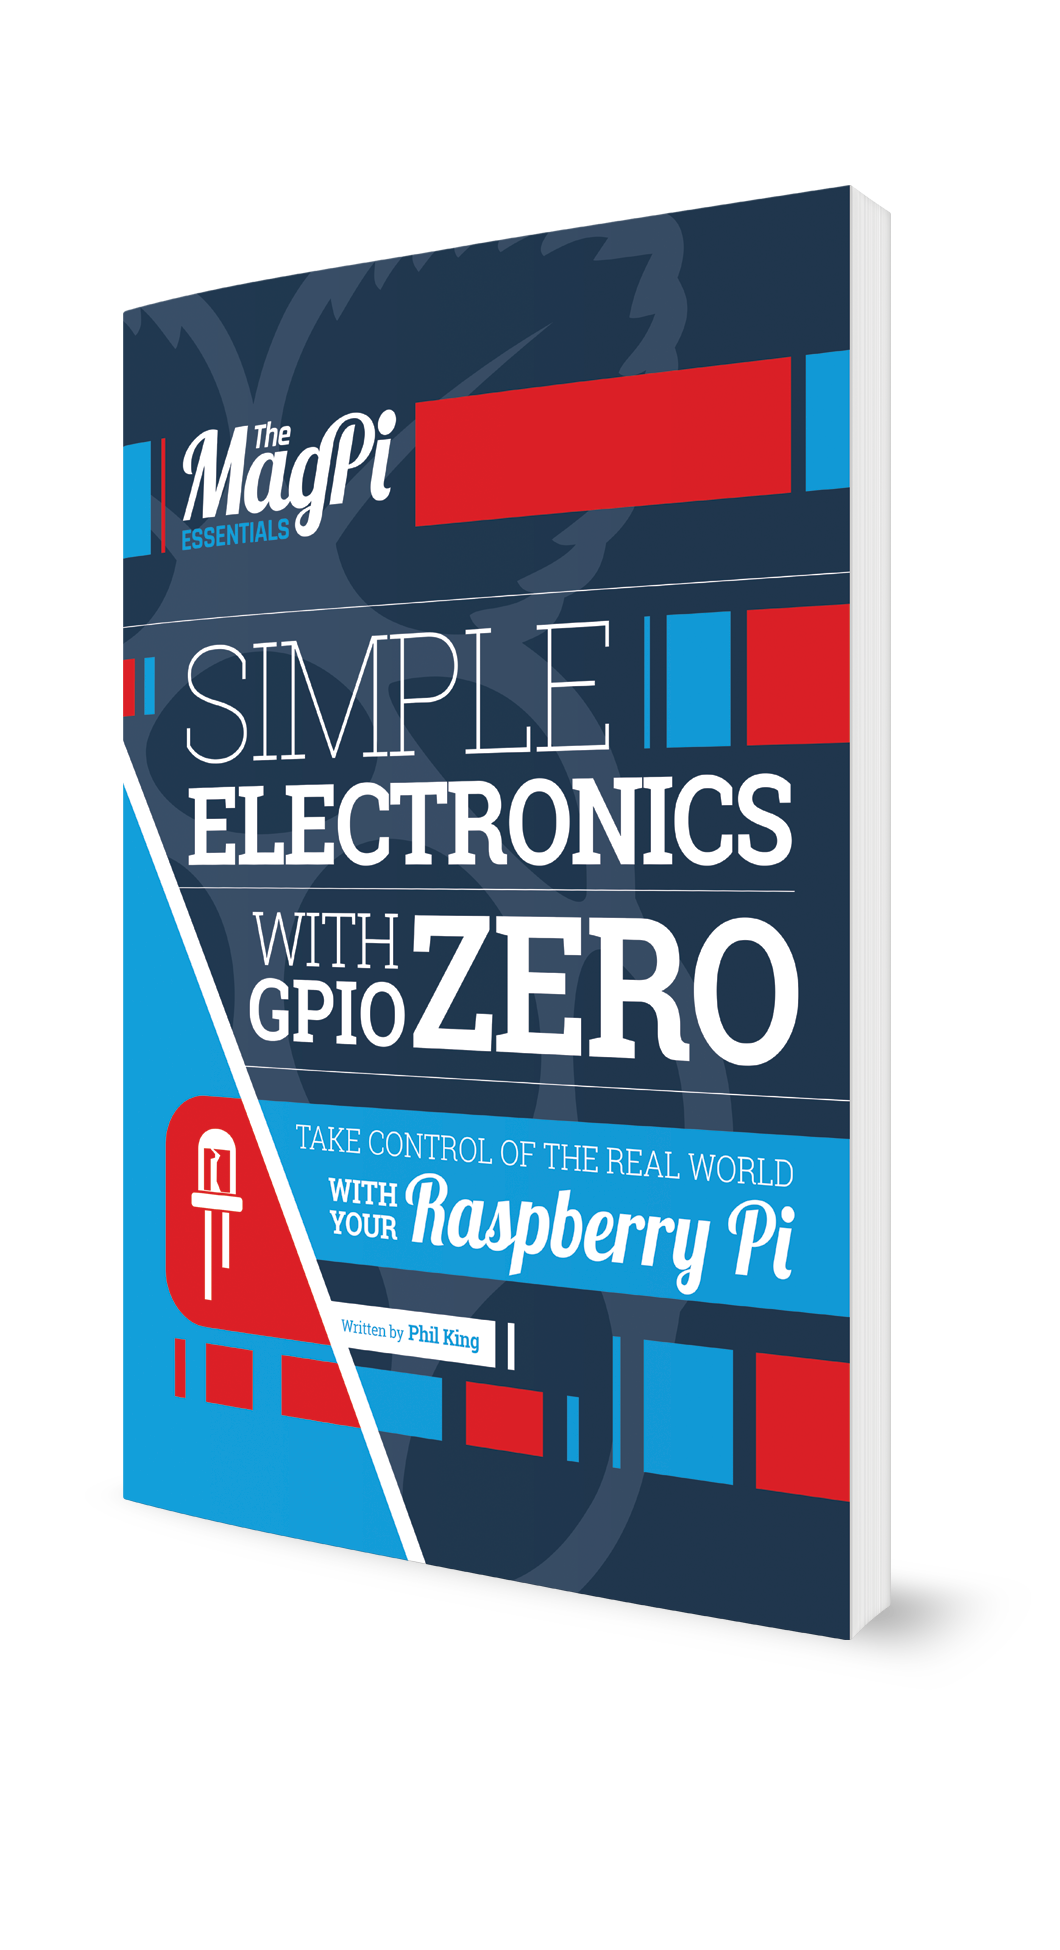 Learn how to create stunning electronics projects with your Raspberry Pi using our 100 page GPIO Zero Essentials guide. Using the GPIO pins on your Raspberry Pi opens up a whole new world of possibilities. While it might seem daunting at first glance, with our help you'll be creating electronic circuits and controlling them with the Python programming language within minutes. Grab your breadboard and start taking control of the real world with your Raspberry Pi today!